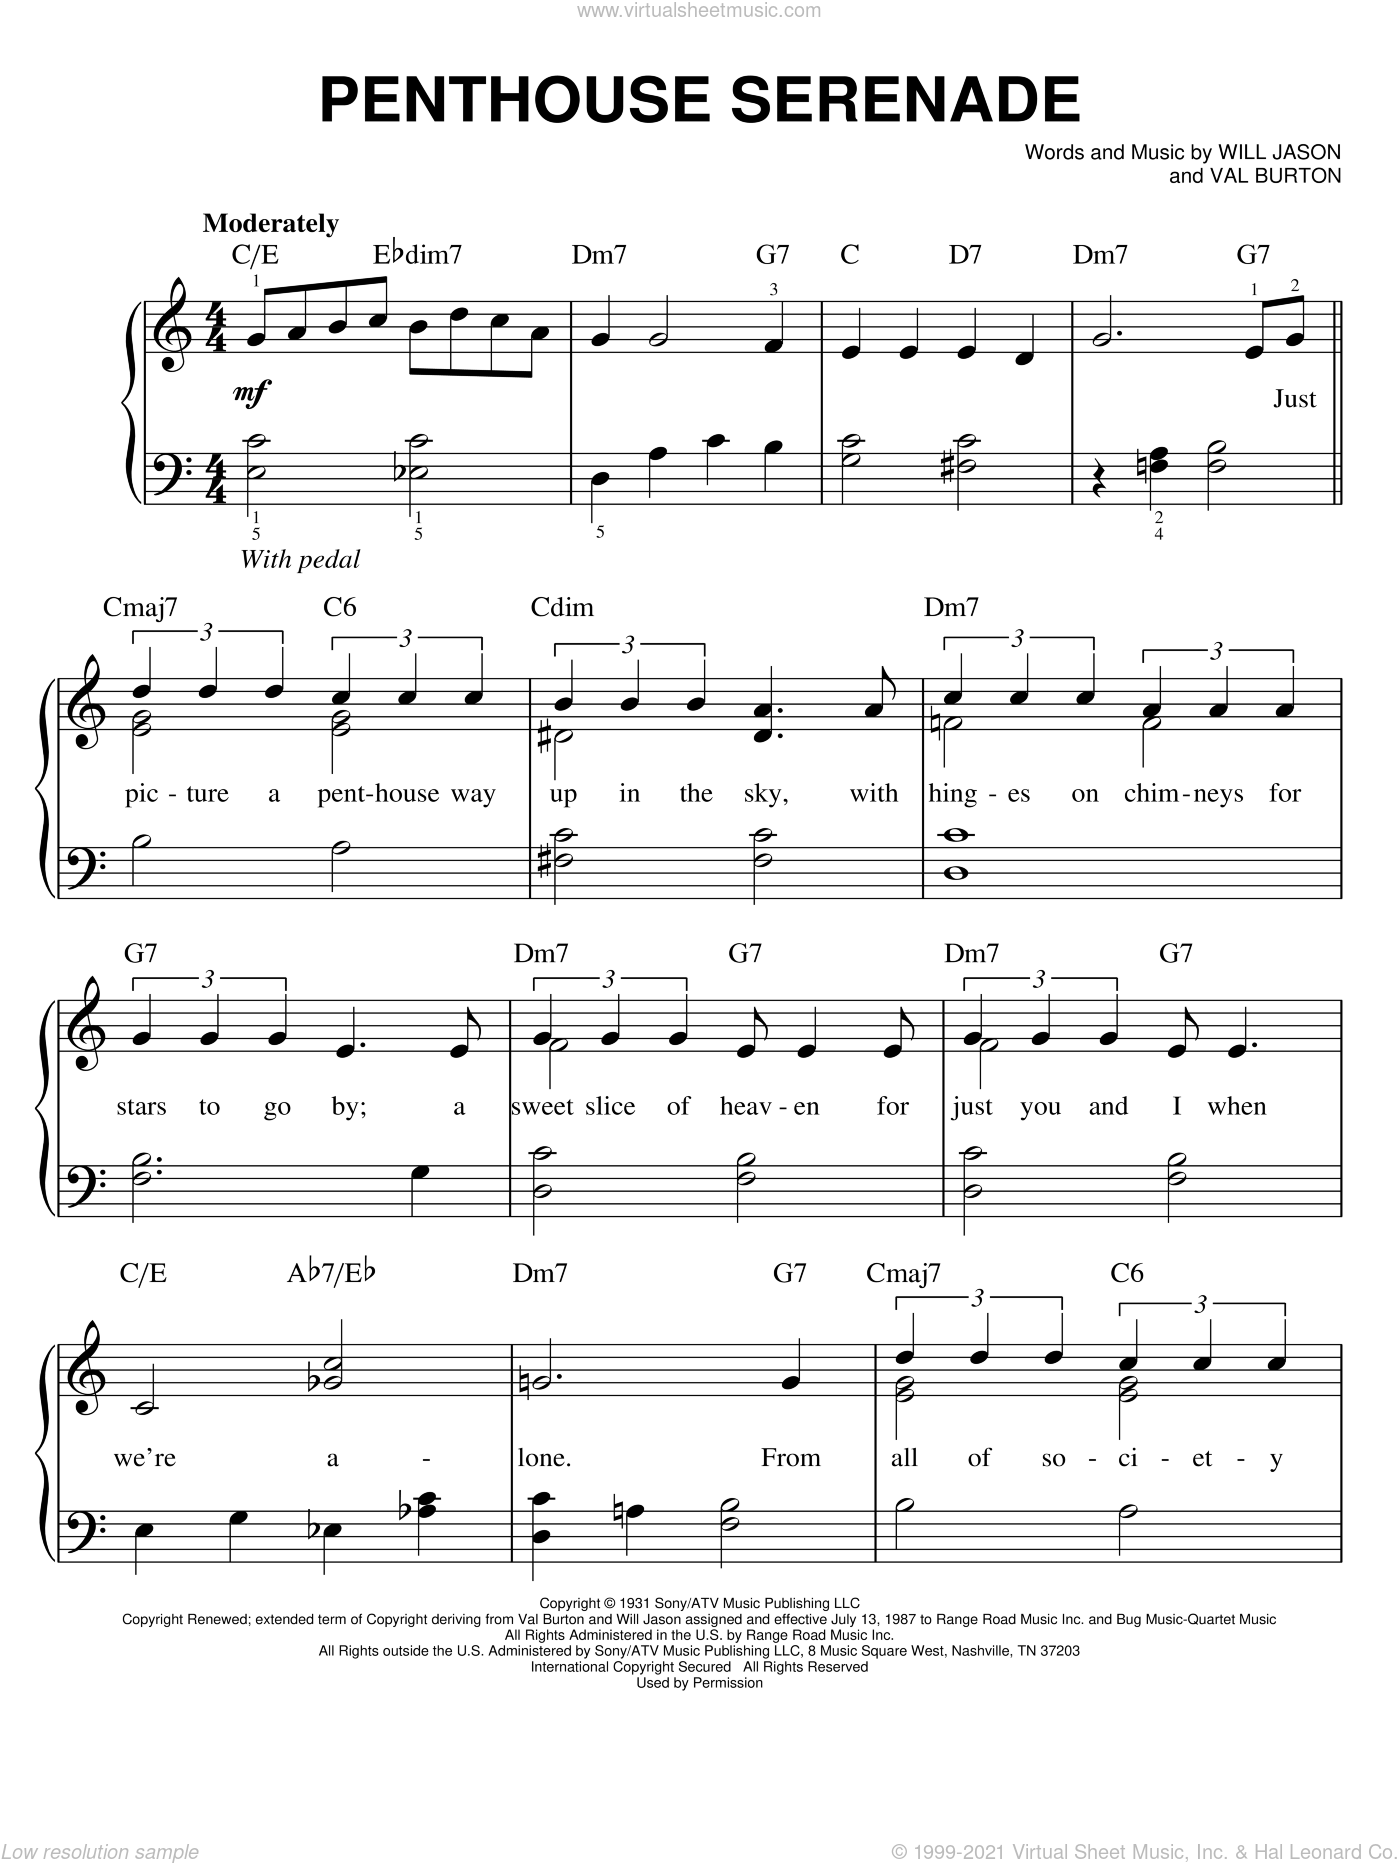 Penthouse Serenade sheet music for piano solo by Will Jason and Nat King Cole. Score Image Preview.